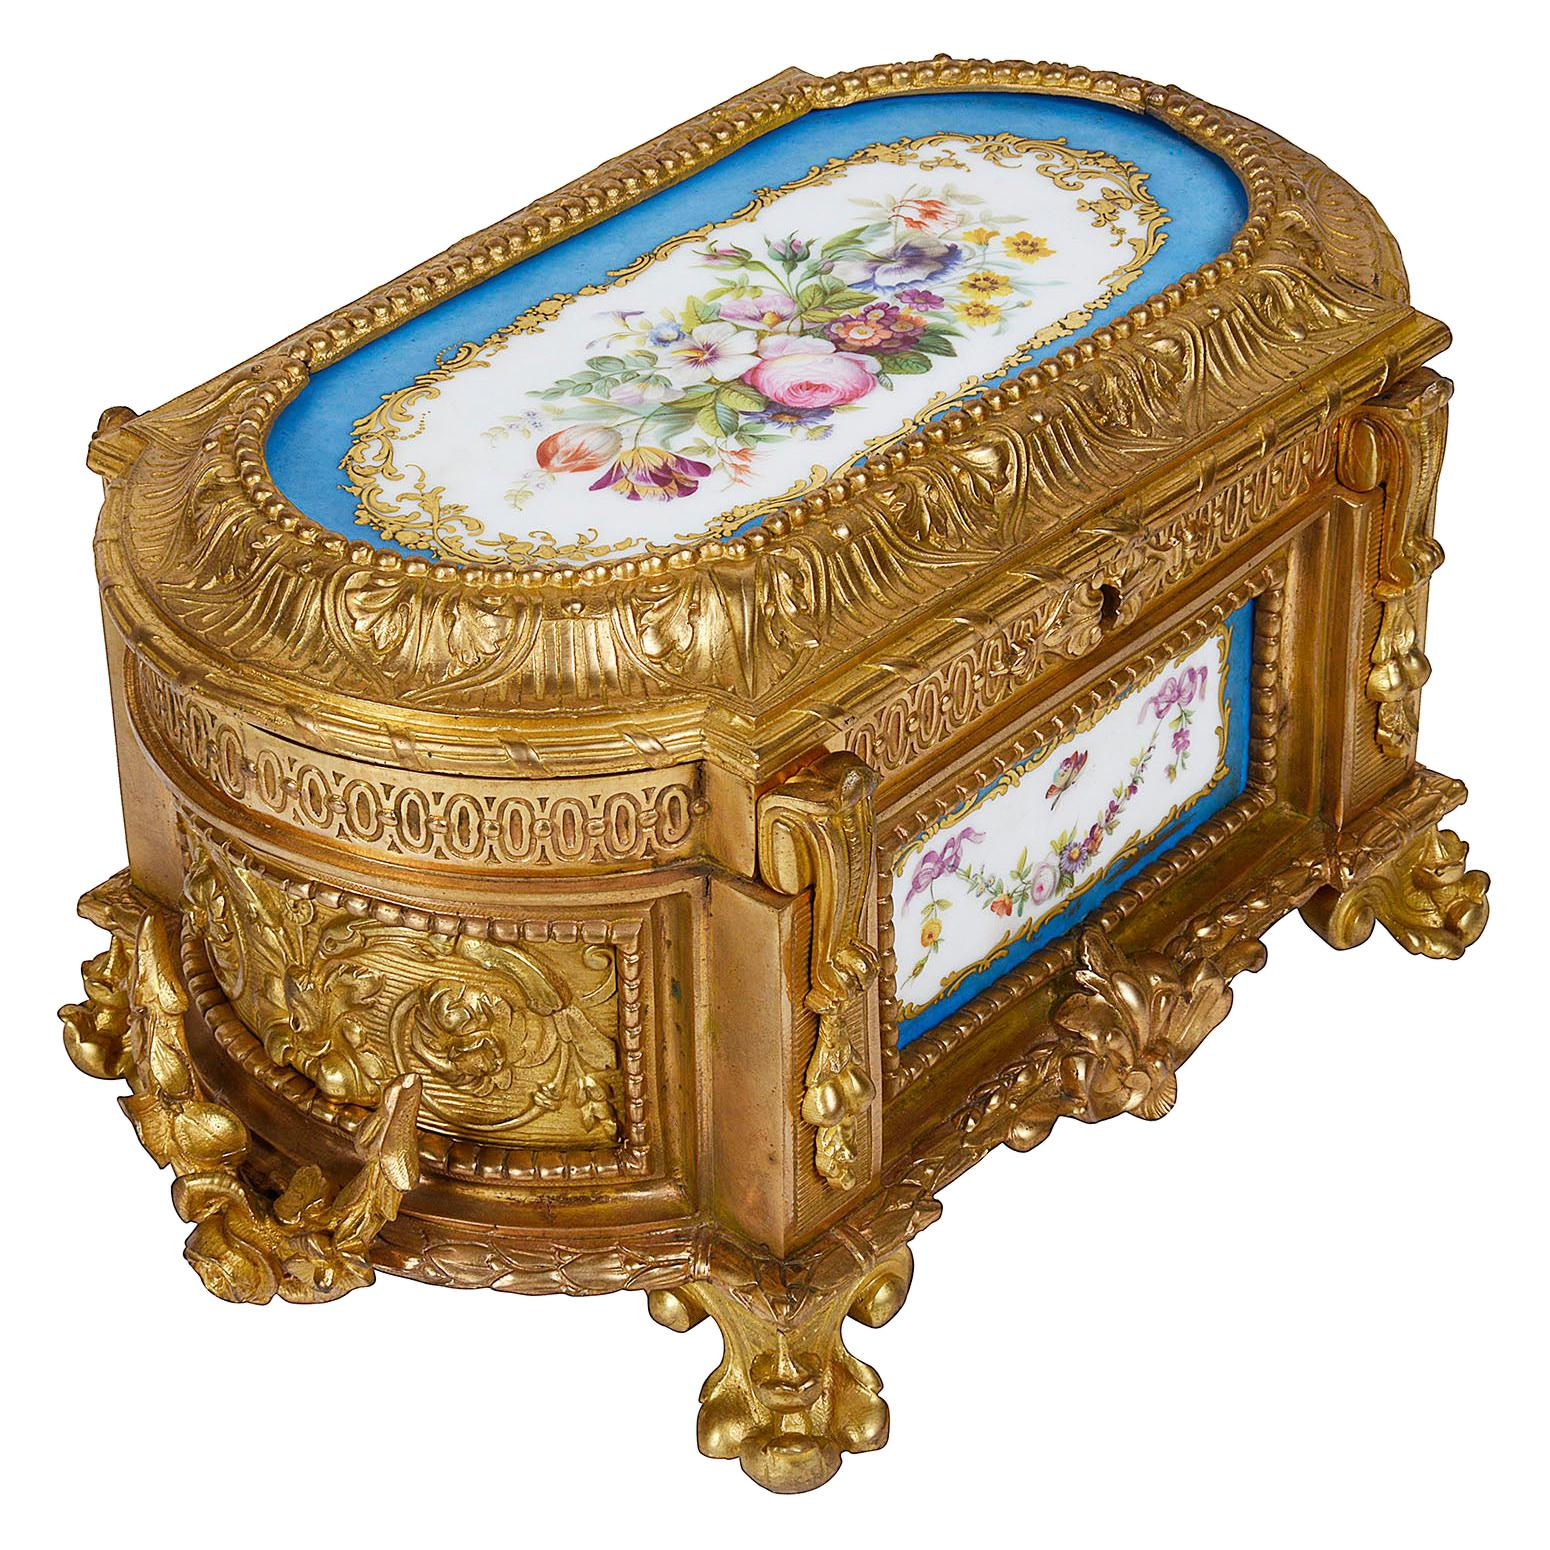 19th Century Sevres Style Casket, by Tahan, Paris